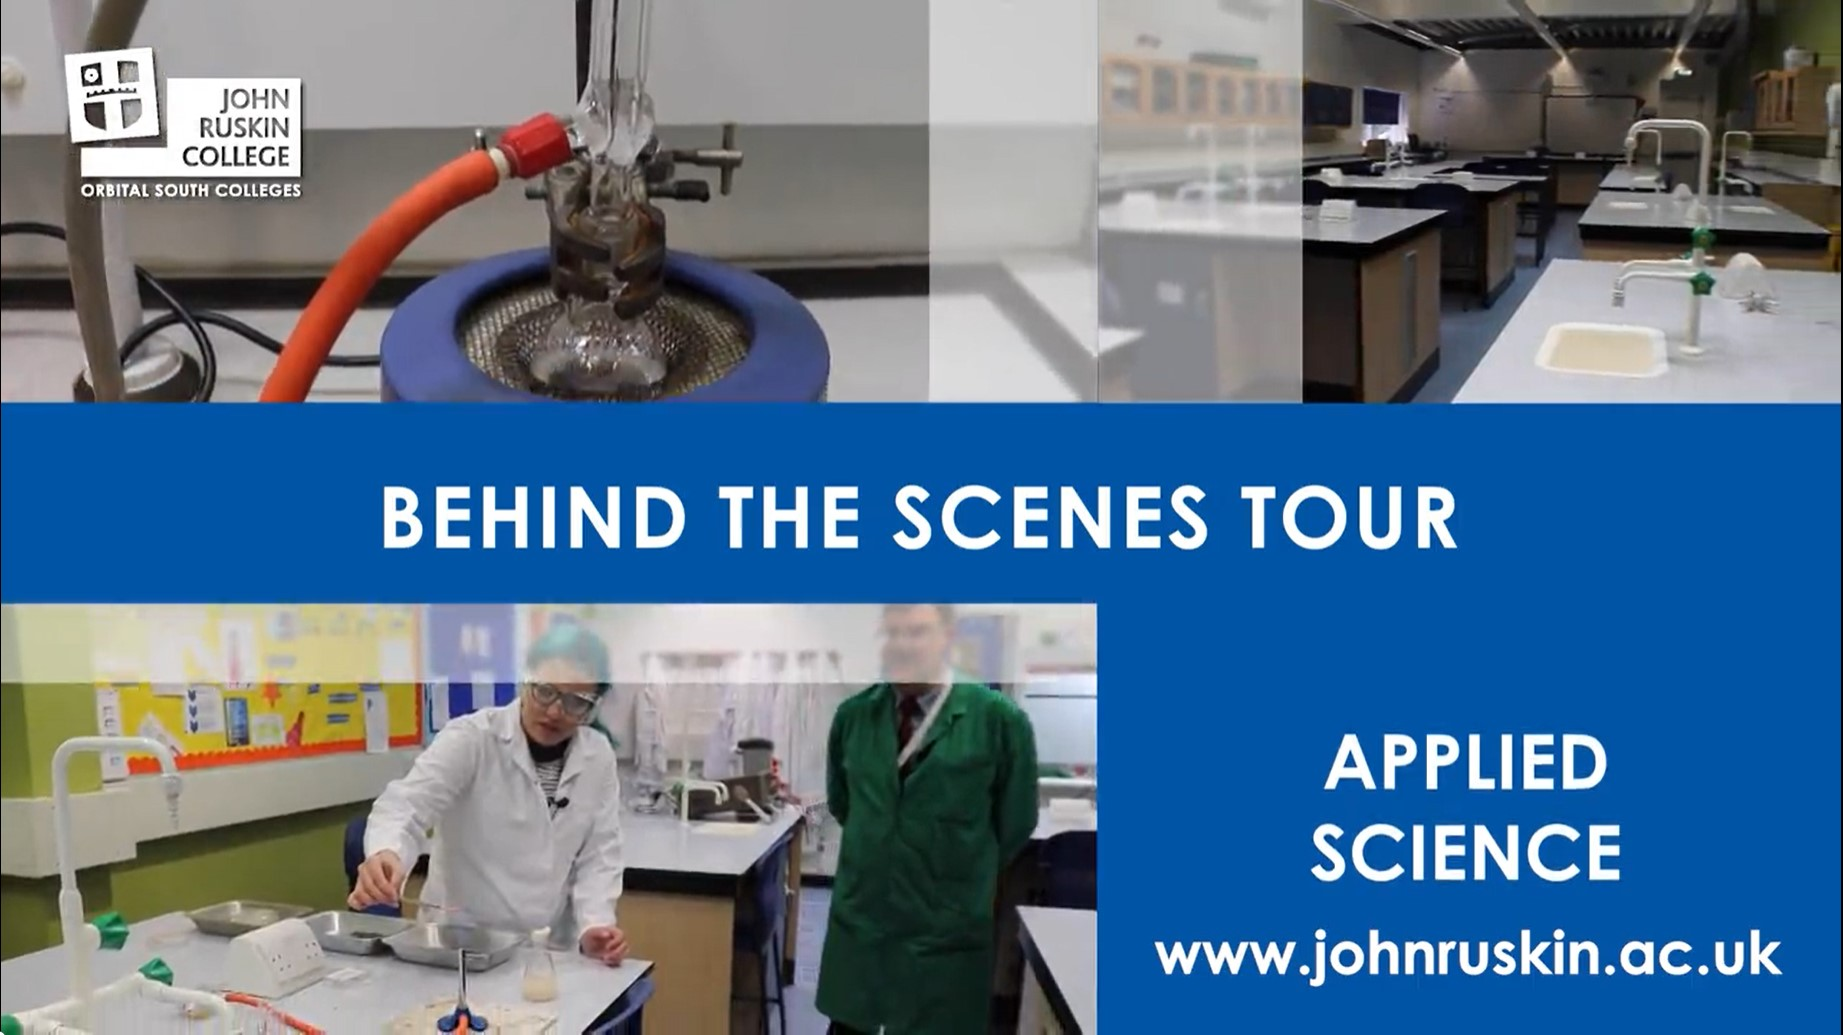 Applied Science - Behind the Scenes